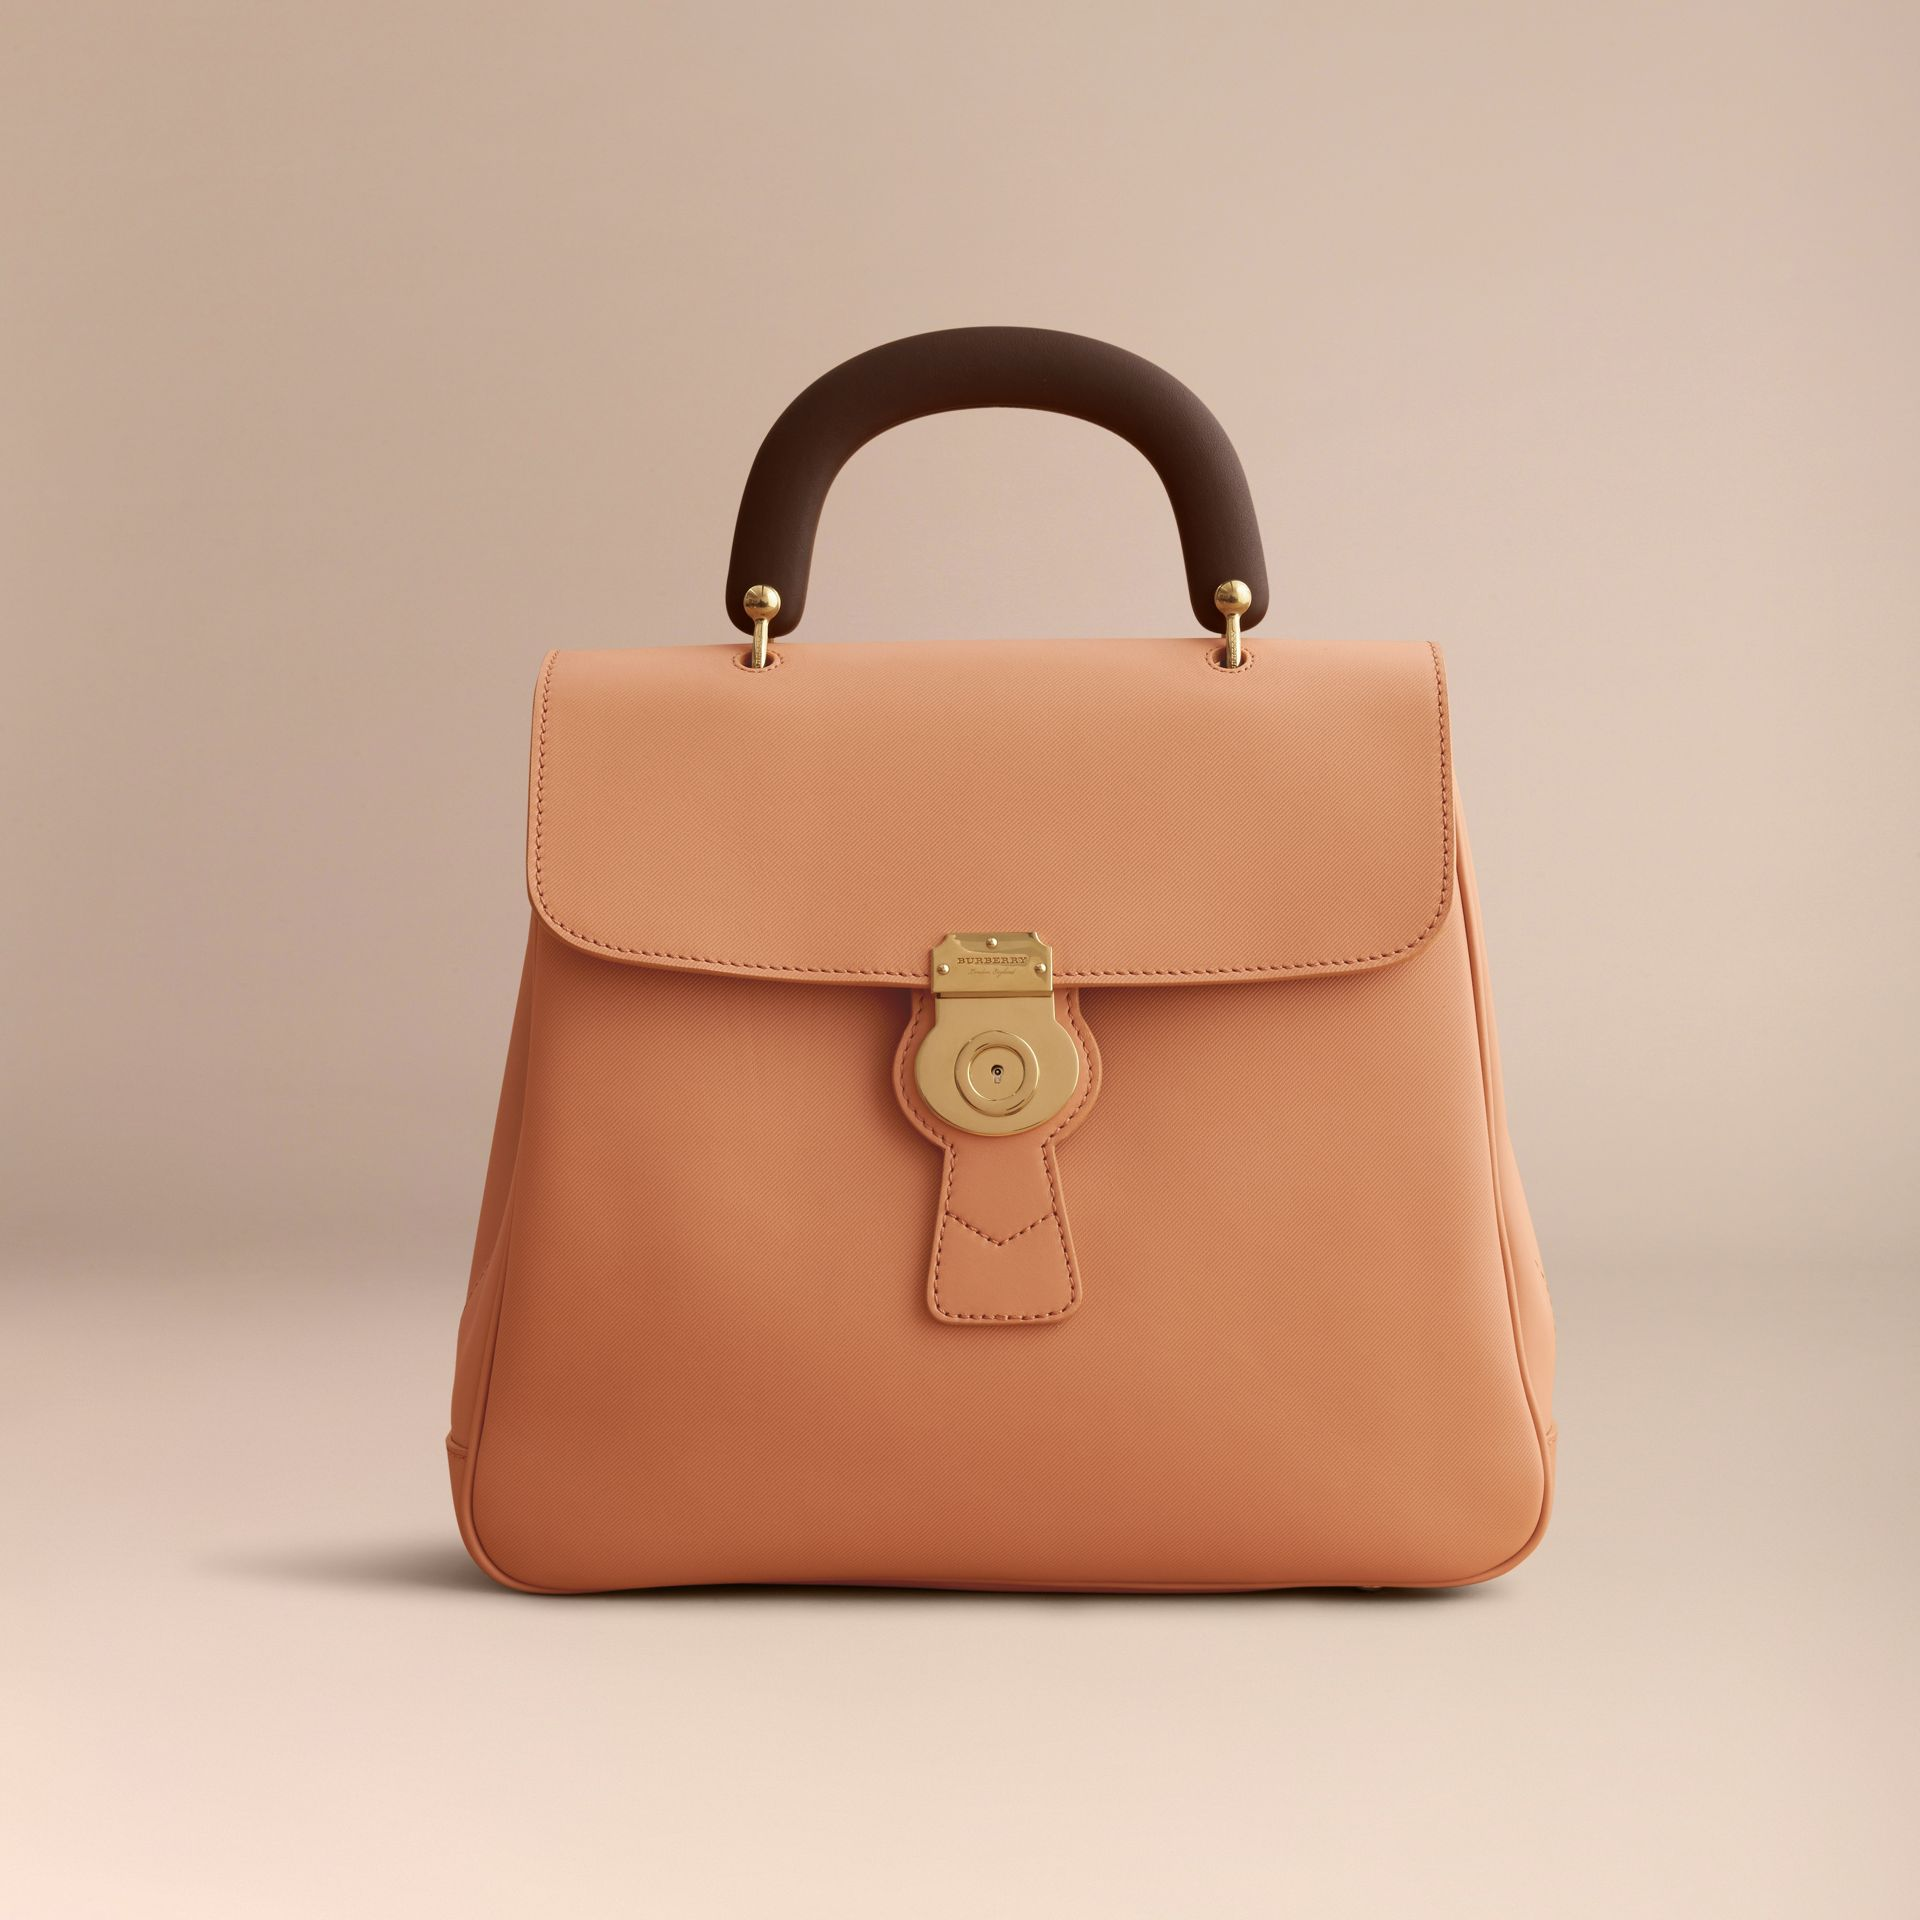 The Large DK88 Top Handle Bag in Pale Clementine - Women | Burberry Singapore - gallery image 7